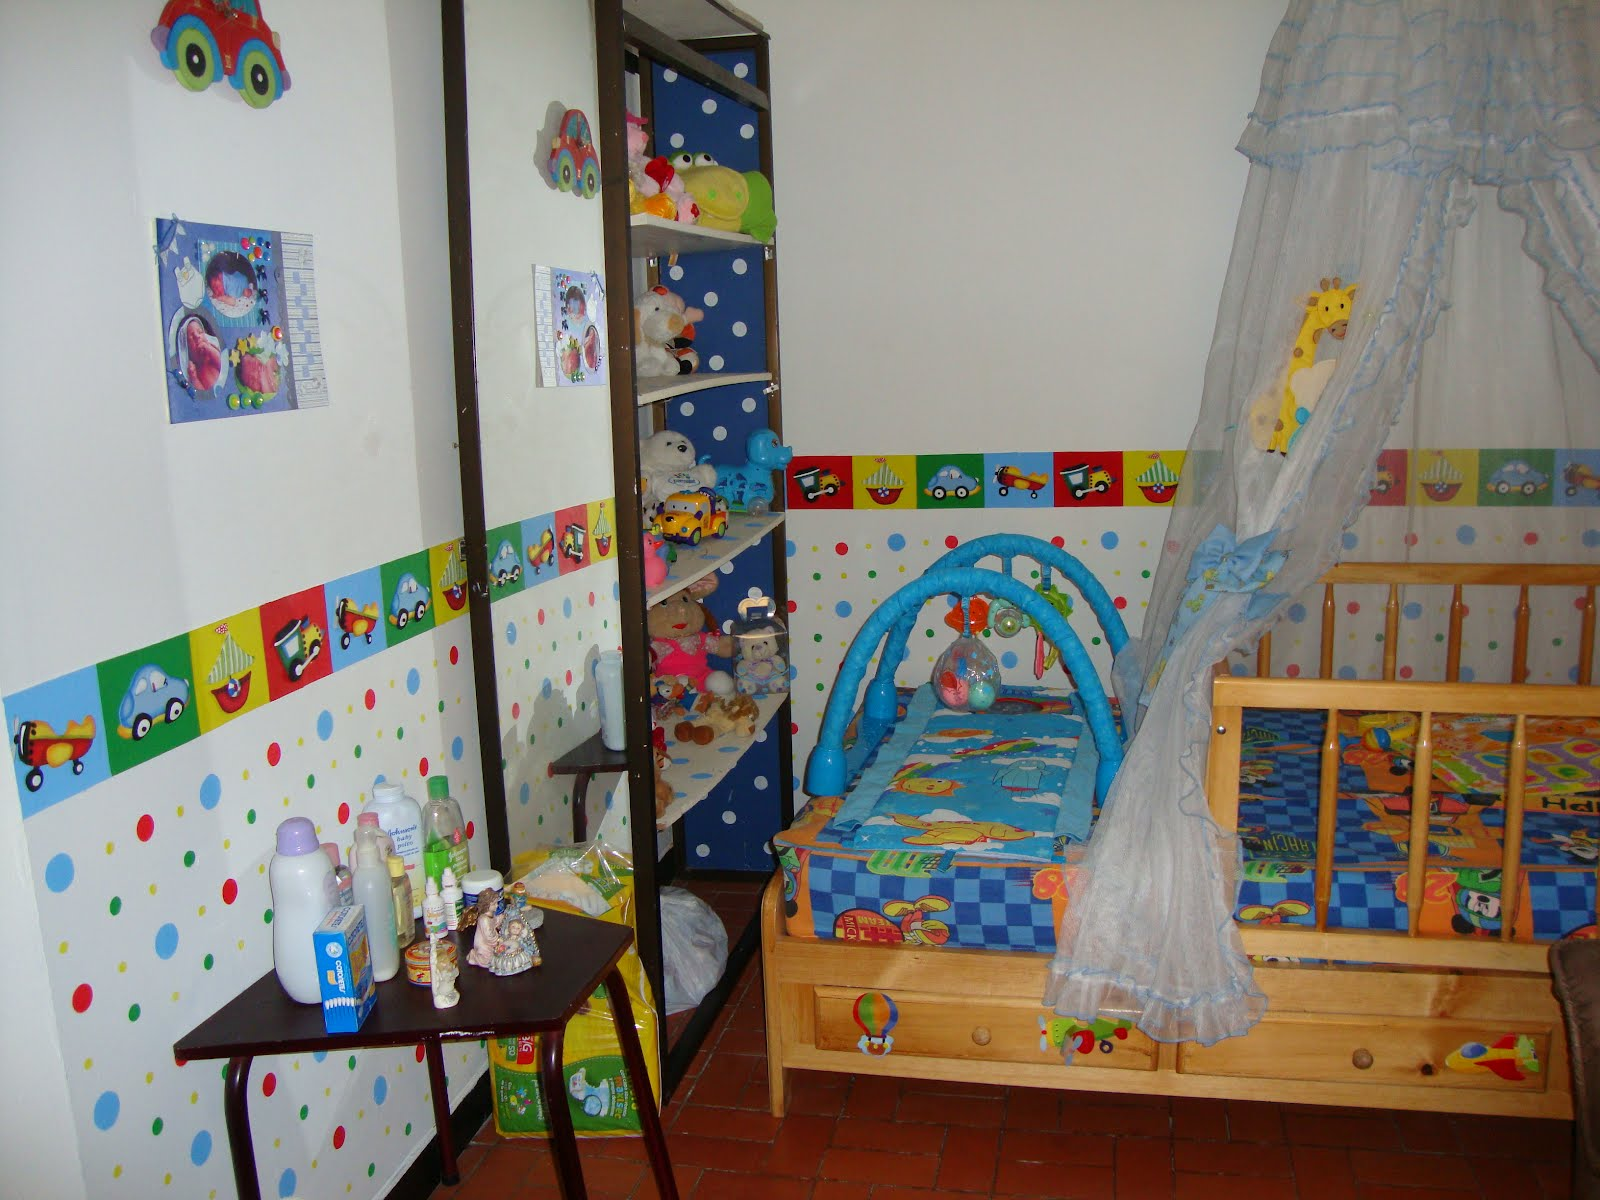 Creaciones lay decoraci n cuarto ni o for Como decorar el cuarto de un nino